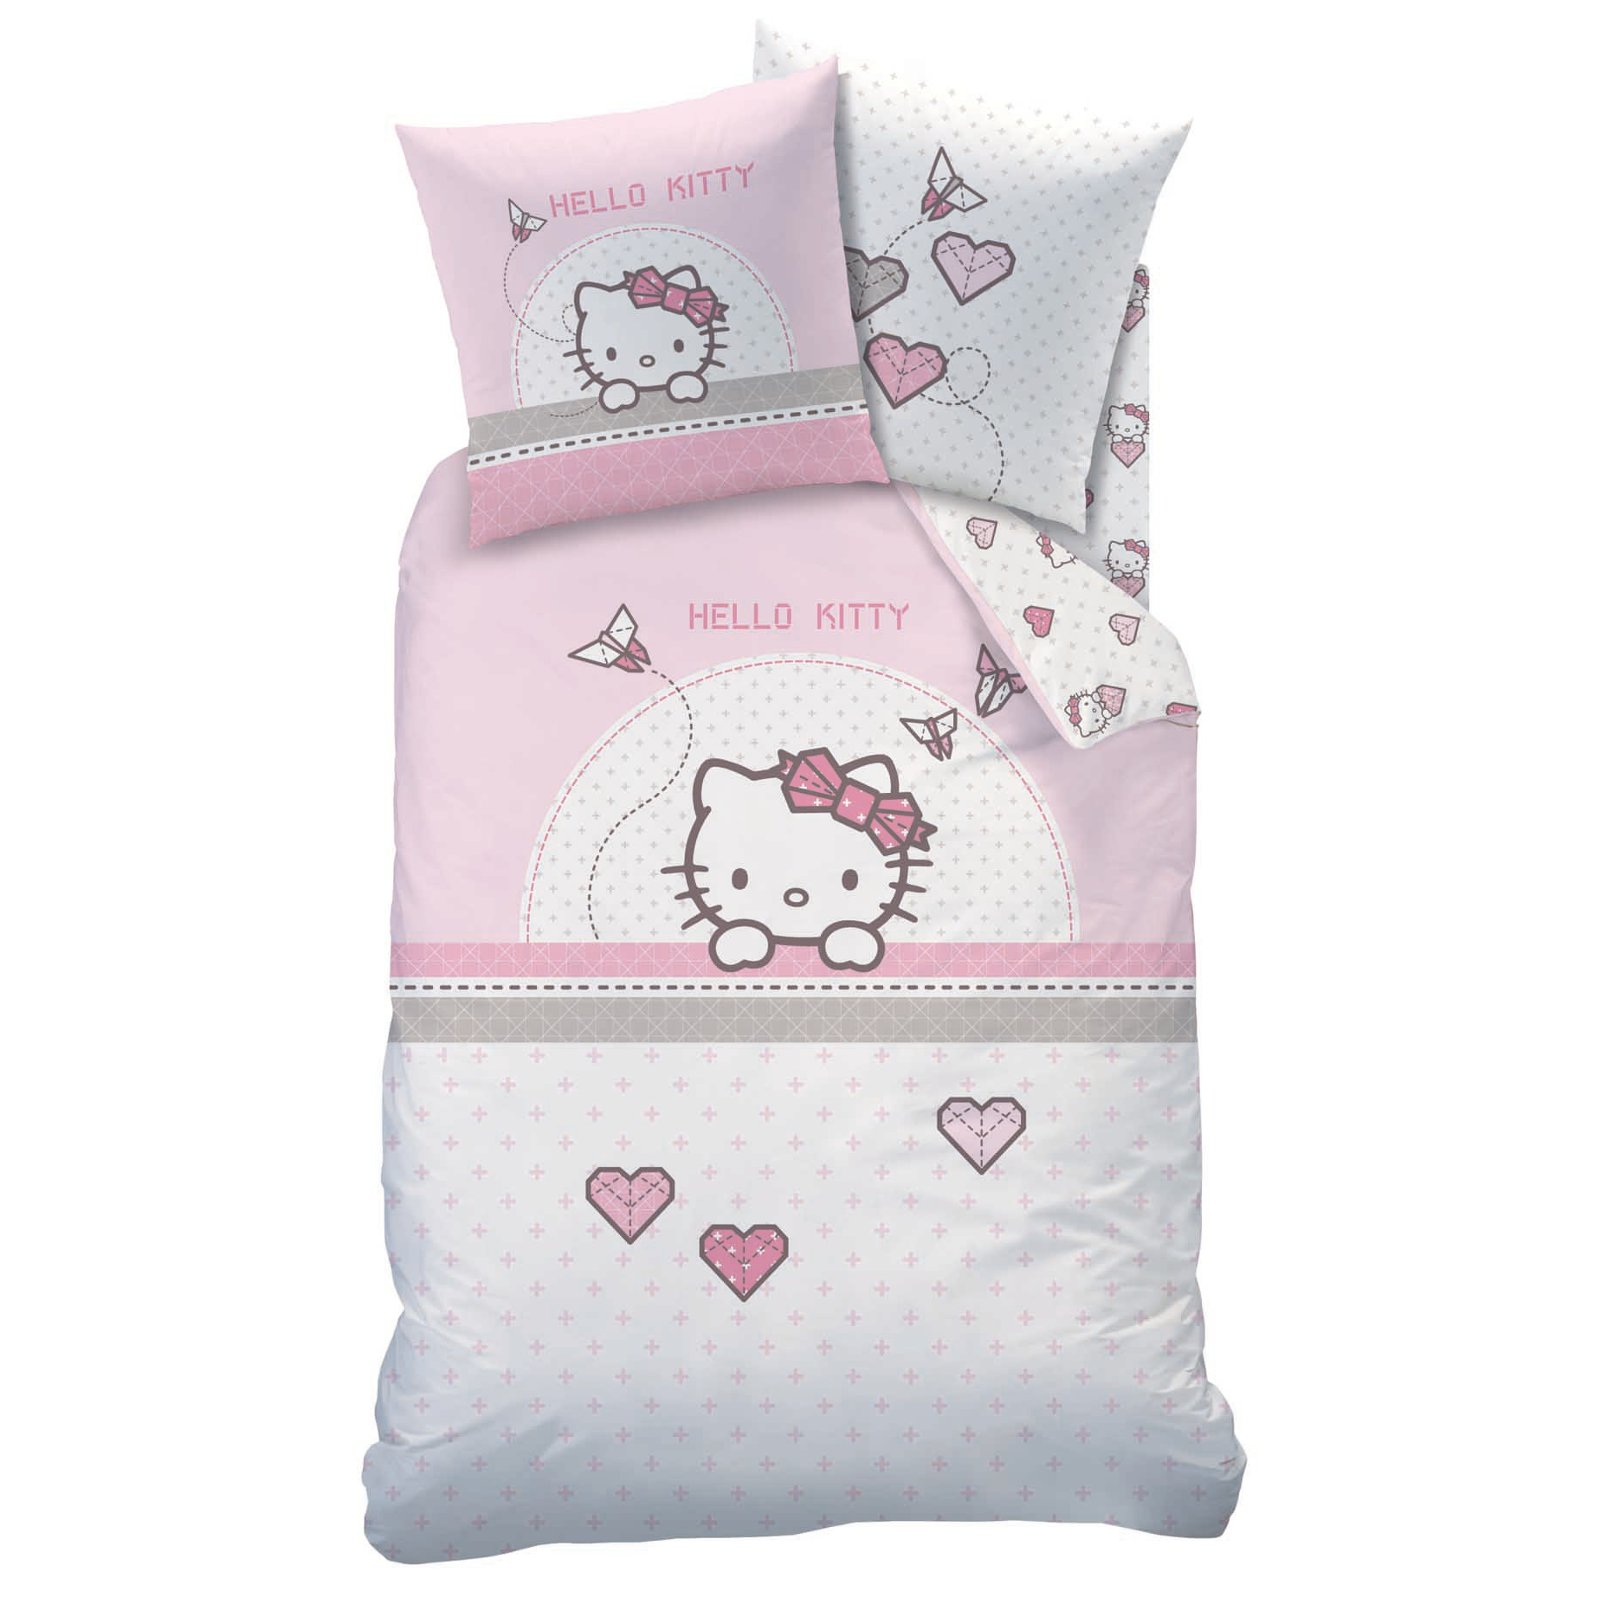 Housse couette hello kitty 200x200 for Housse de voiture hello kitty